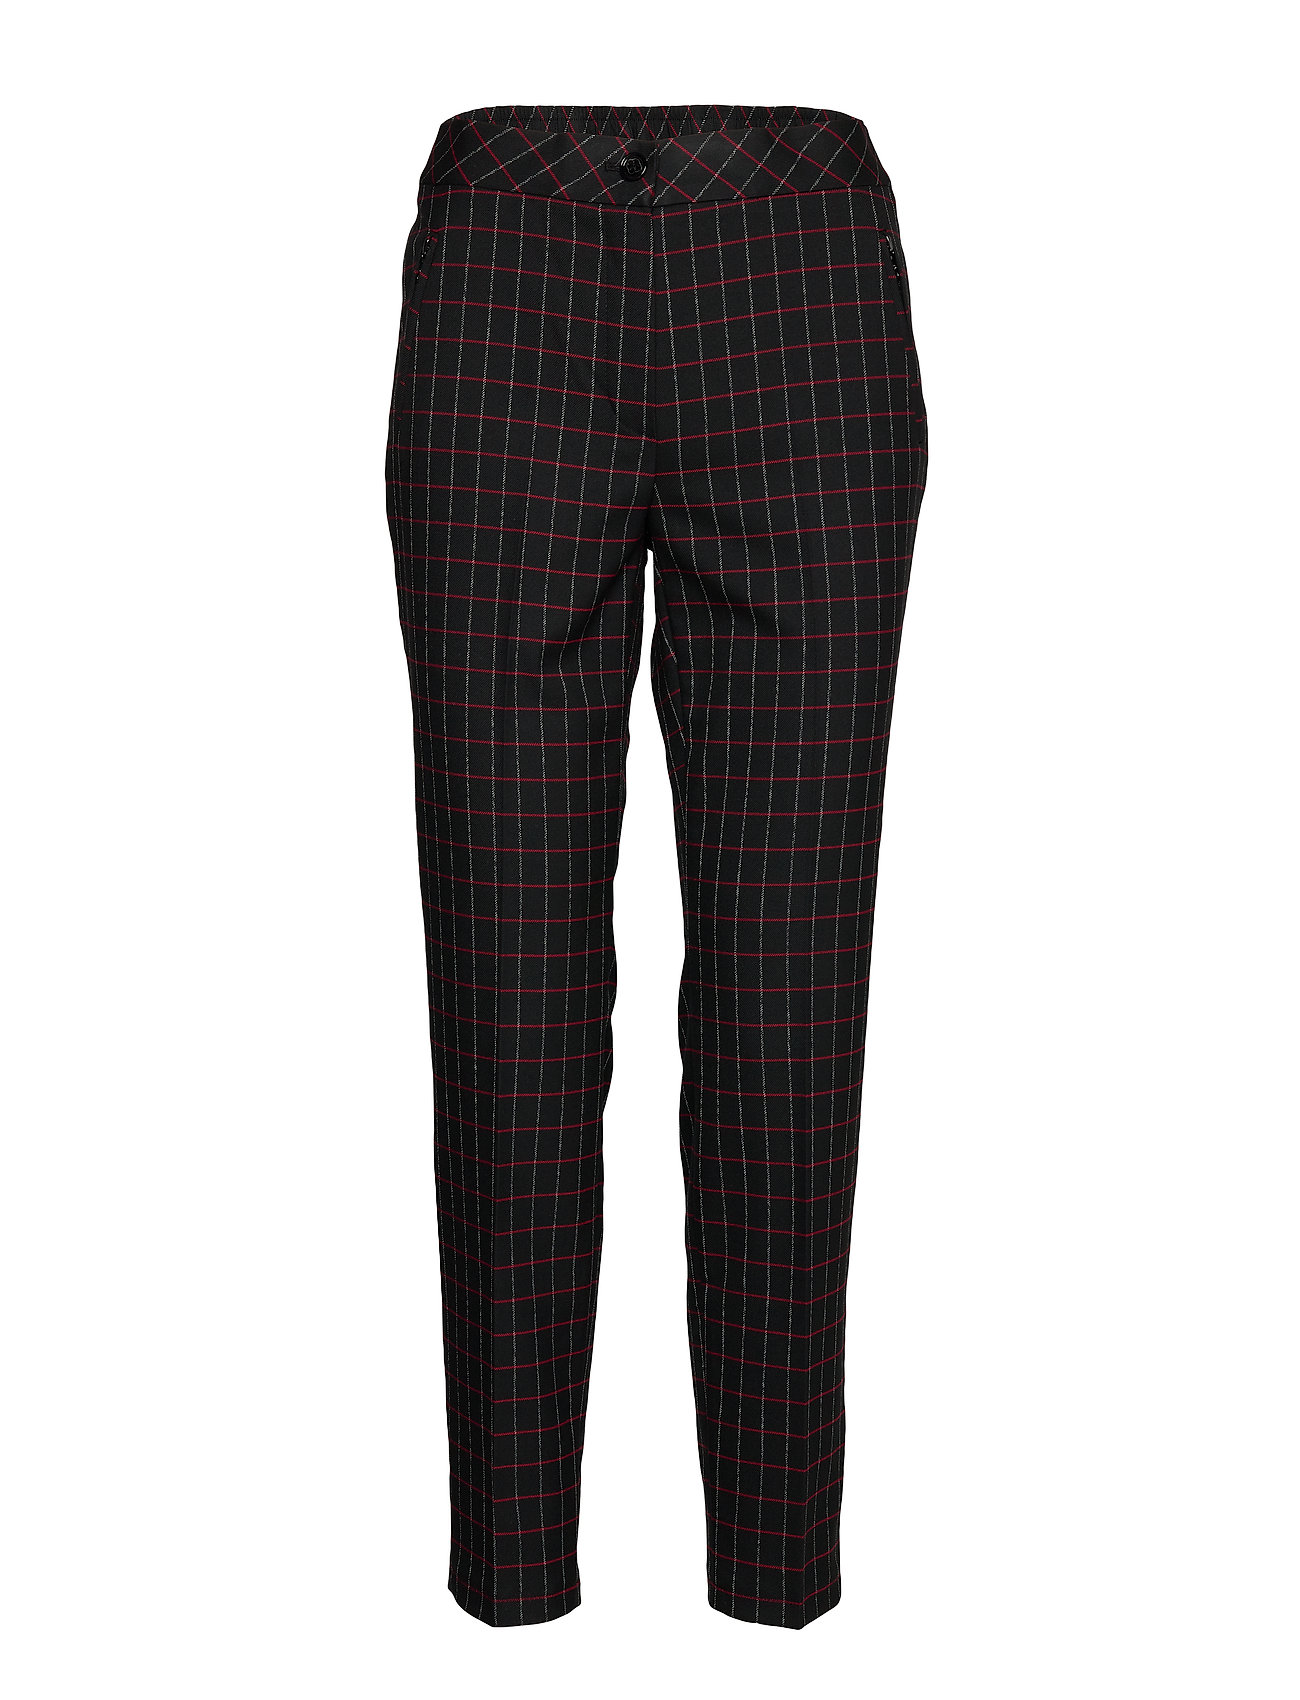 Gerry Weber CROP LEISURE TROUSER - BLACK/RED/ORANGE CHECK